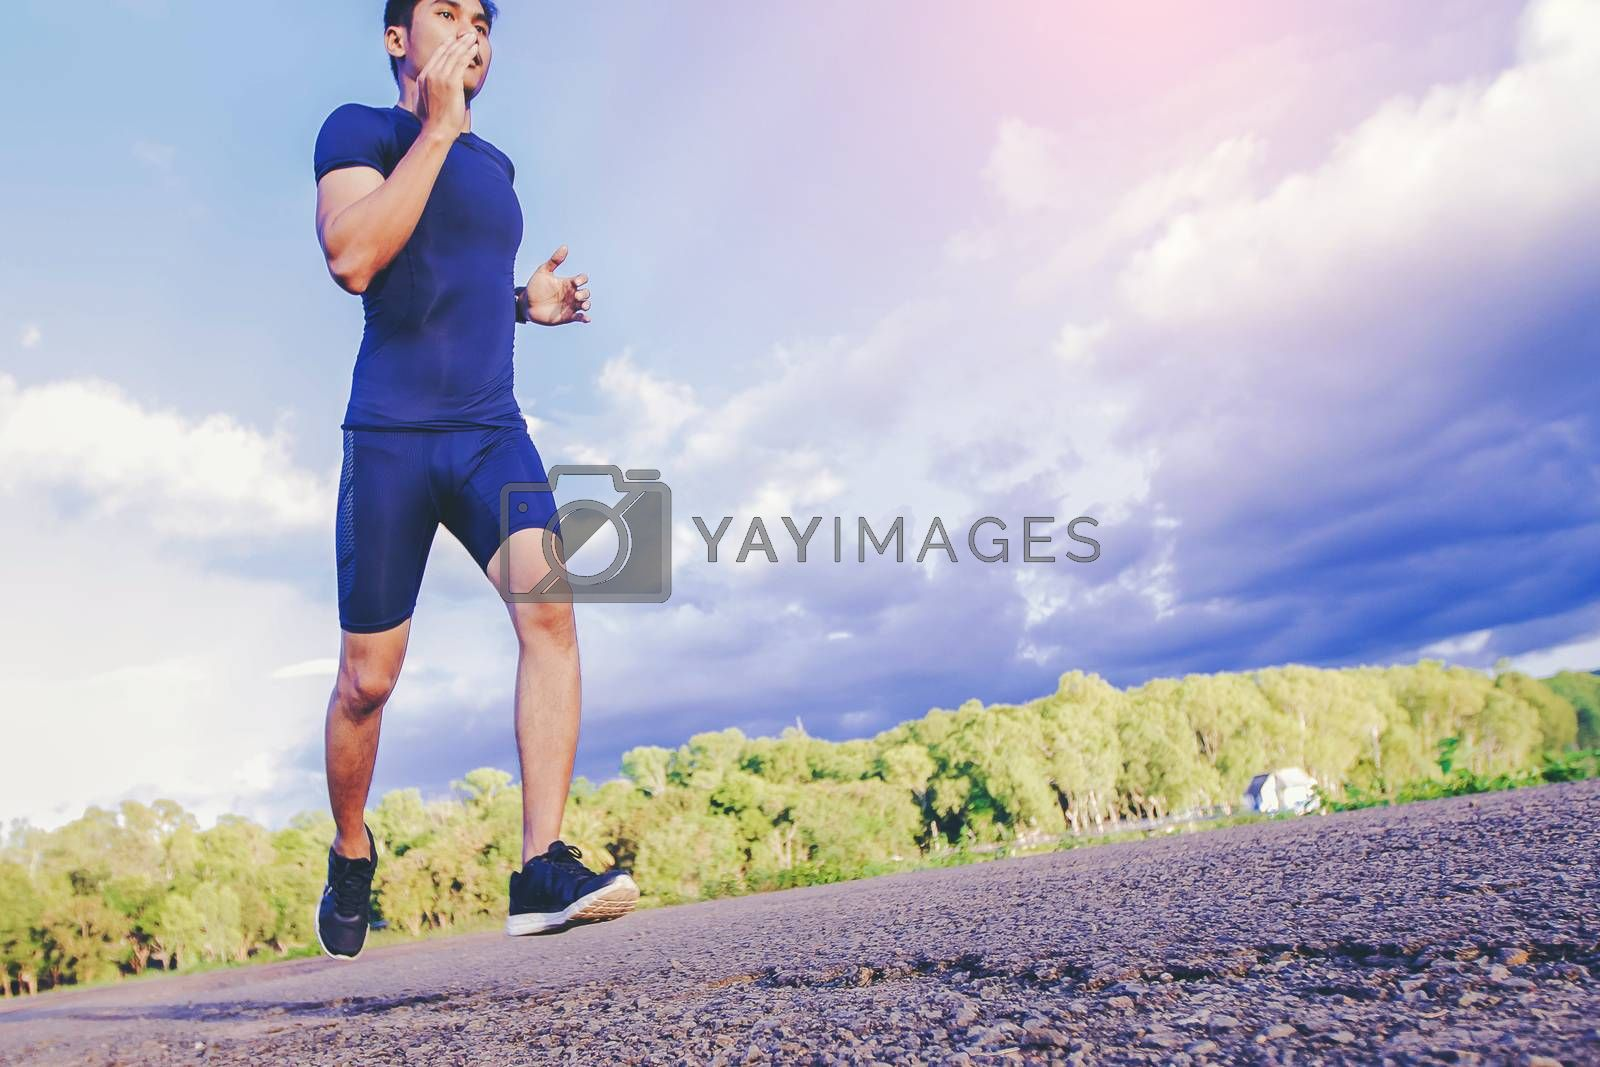 handsome man running on a rural road during sunset